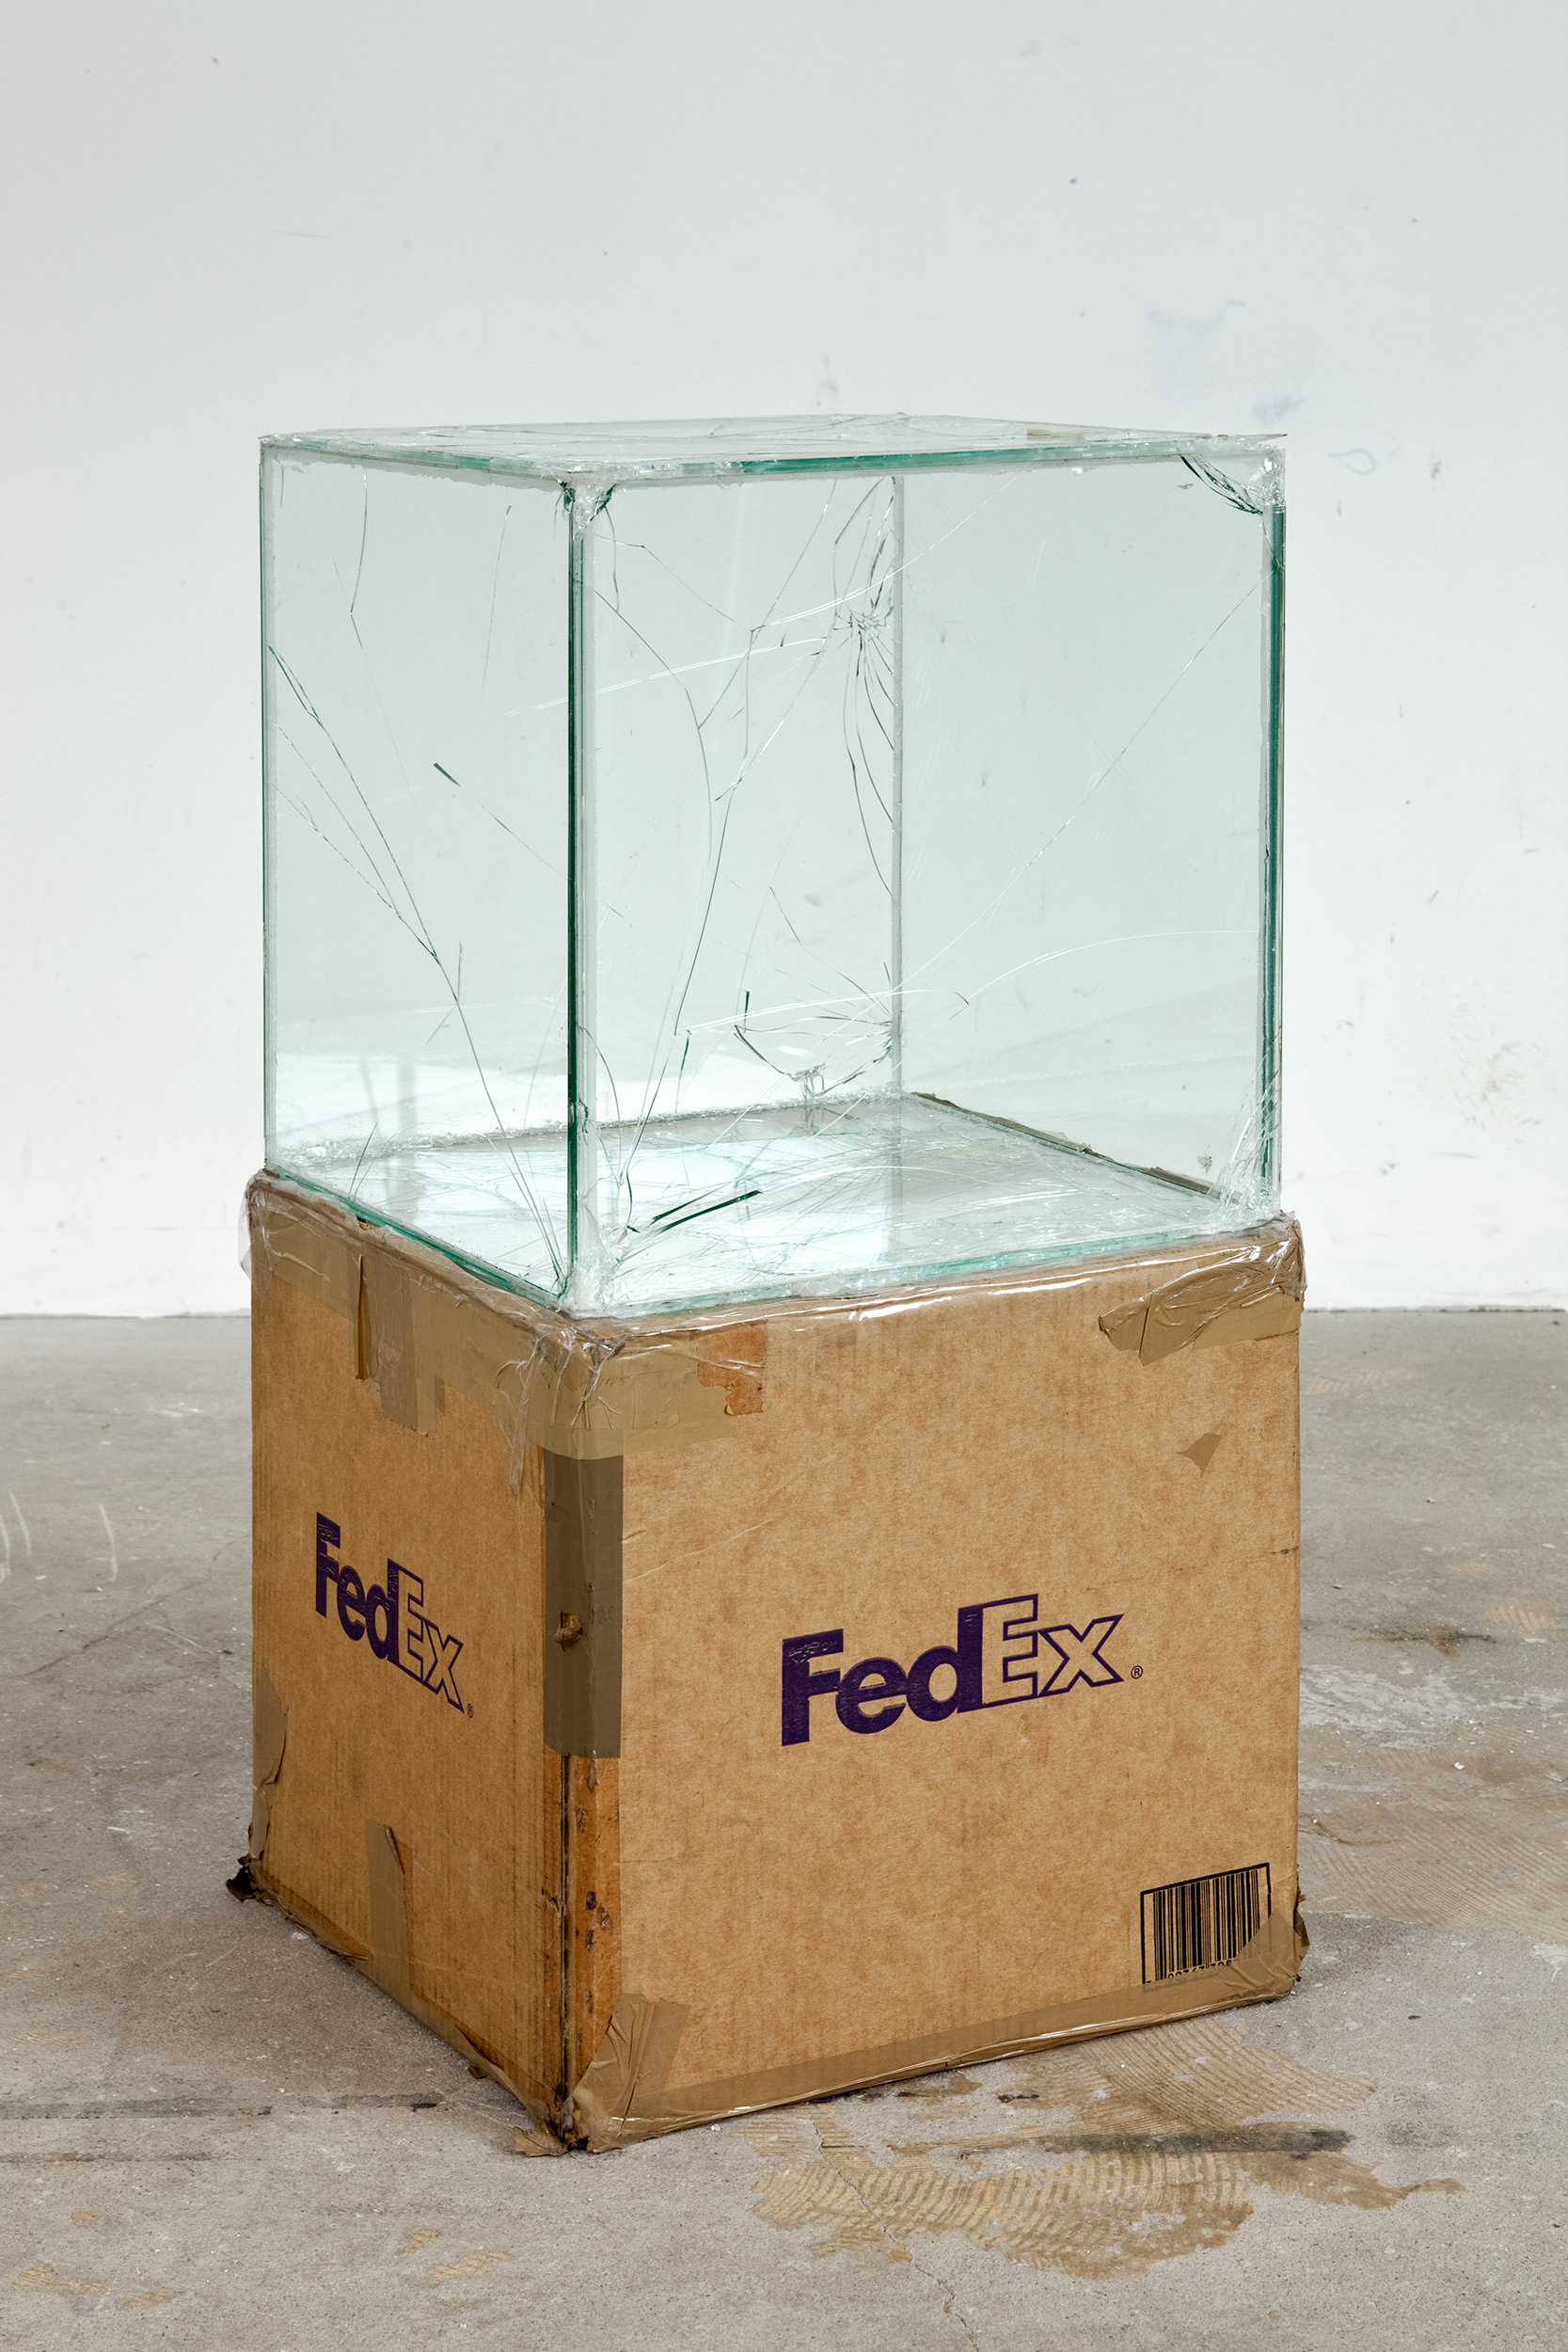 FedEx® Kraft Box  © 2005 FEDEX 330504 10/05 SSCC, Priority Overnight, Los Angeles-Miami trk#865344981299, October 29–30, 2008, Priority Overnight, Miami–Ann Arbor trk#861049125115, March 03–04, 2009, Standard Overnight, Ann Arbor–Los Angeles trk#868274625749, July 09–10, 2009, Standard Overnight, Los Angeles–San Francisco trk#878069766471, August 27–28, 2009, Standard Overnight, San Francisco–Los Angeles trk#870342520145, November 12–13, 2009, International Priority, Los Angeles–London trk#798269222978, April 10–12, 2012   2008–  Laminated glass, FedEx shipping box, accrued FedEx shipping and tracking labels, silicone, metal, tape  16 x 16 x 16 inches   FedEx Glass Works, 2007–    Pulleys, Cogwheels, Mirrors, and Windows, 2009